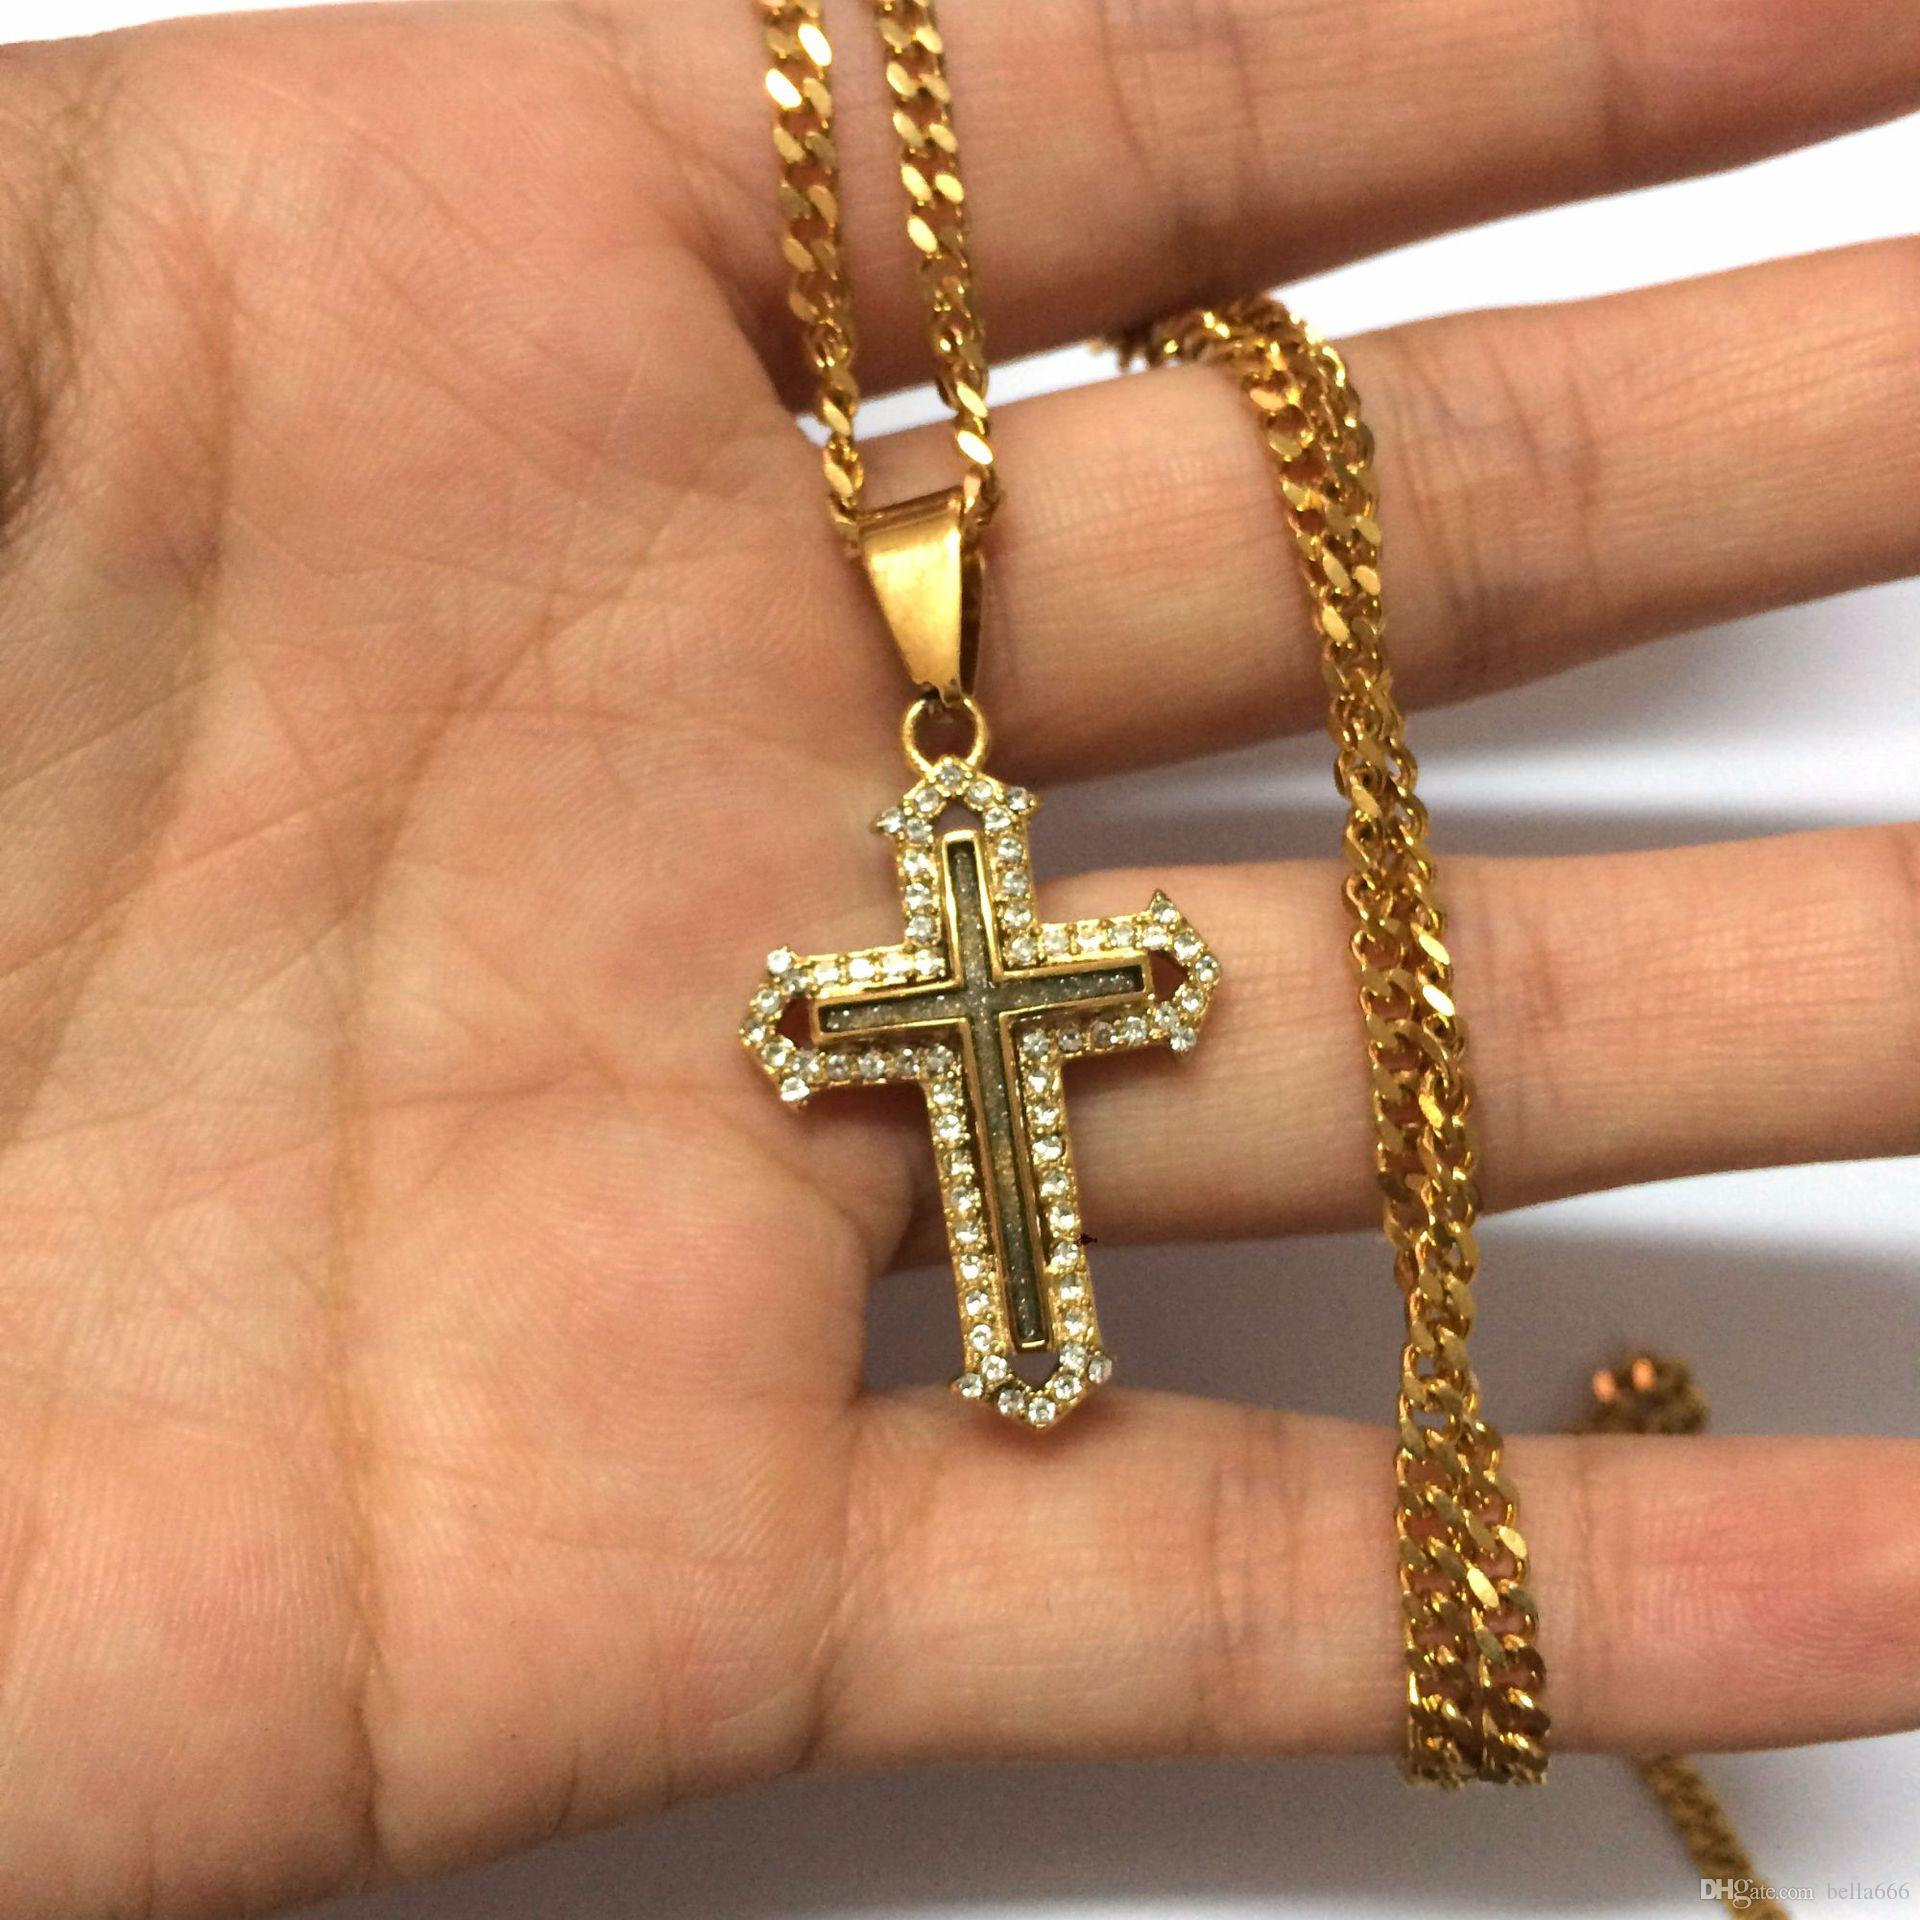 Unisex Hip hop Stainless Steel Hollow Double Cross Pendant Necklace High Grade Gold plated Rhinestone Shiny Mini Charm Pendants Rap Jewelry